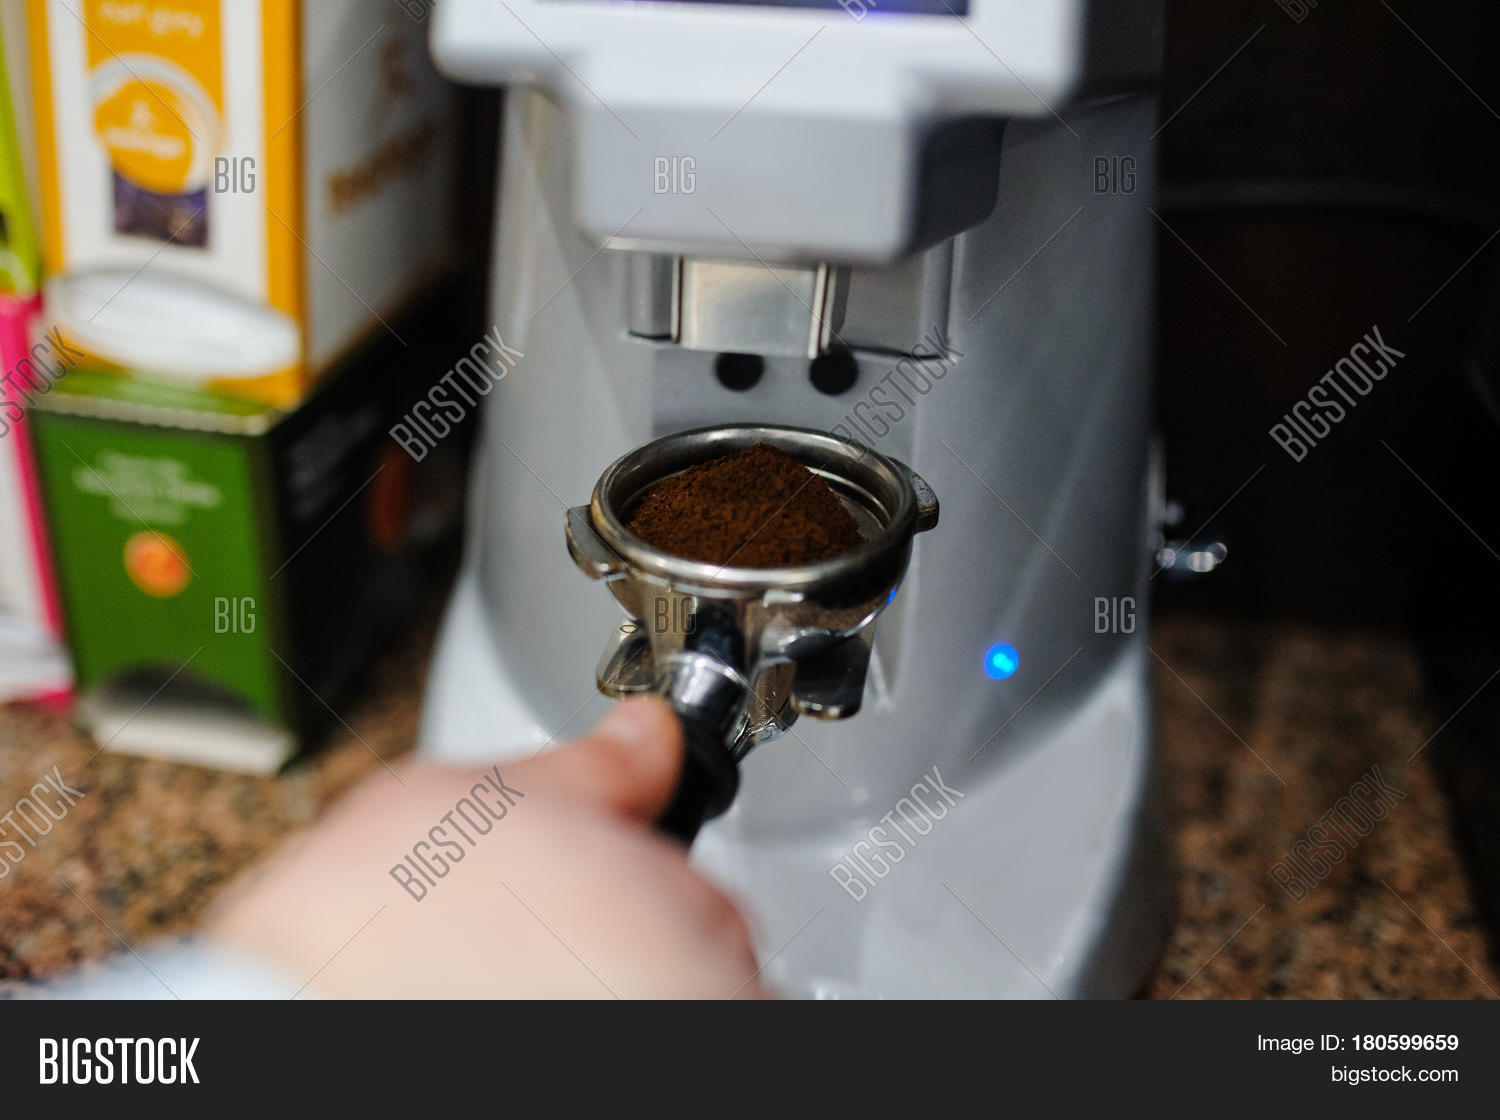 aluminum,aroma,aromatic,background,bar,barista,bayonet,bean,beverage,black,business,cafe,caffeine,cappuccino,closeup,coffee,coffeemaker,coffeeshop,cropped,cup,drink,equipment,espresso,fresh,grind,grinder,hand,italian,kitchen,macchiato,machine,maker,making,metal,modern,occupation,piston,pistonportafilter,portafilter,preparation,professional,refreshment,restaurant,shop,steel,tamped,tamper,tamping,taste,technique